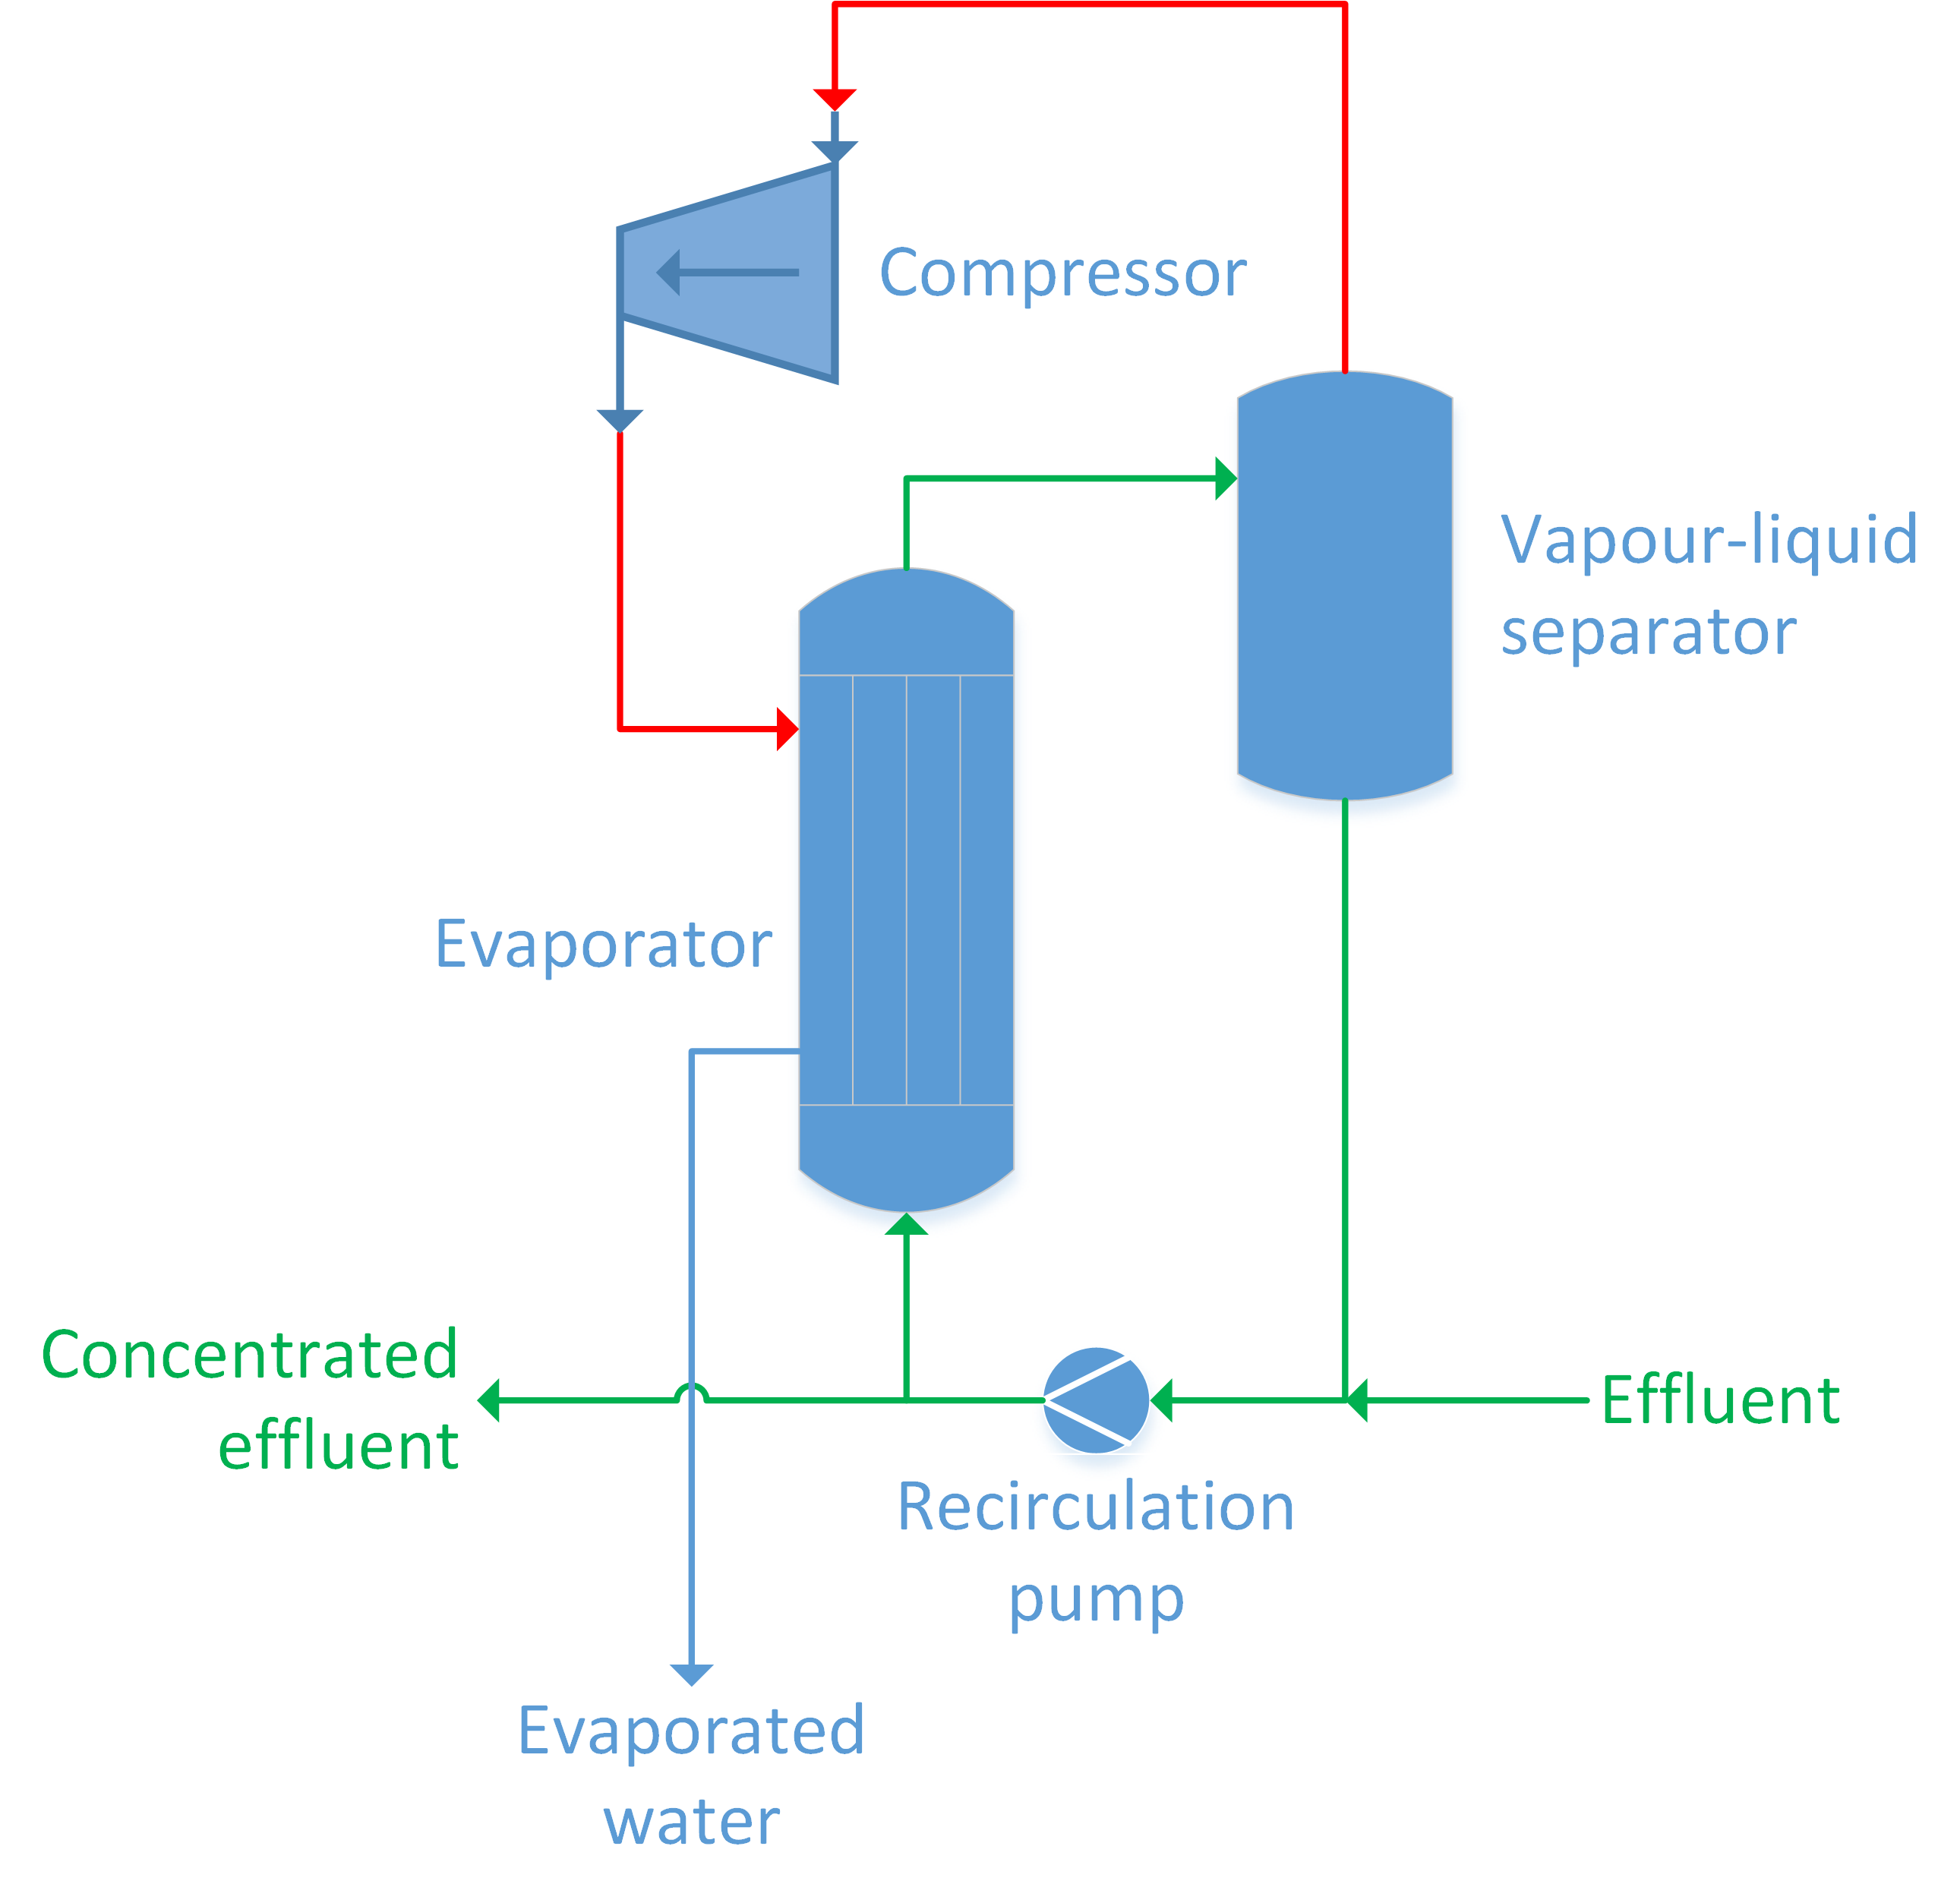 mechanical-vapour-compression-mvr-or-thermal-vapour-compression-tvr-systems